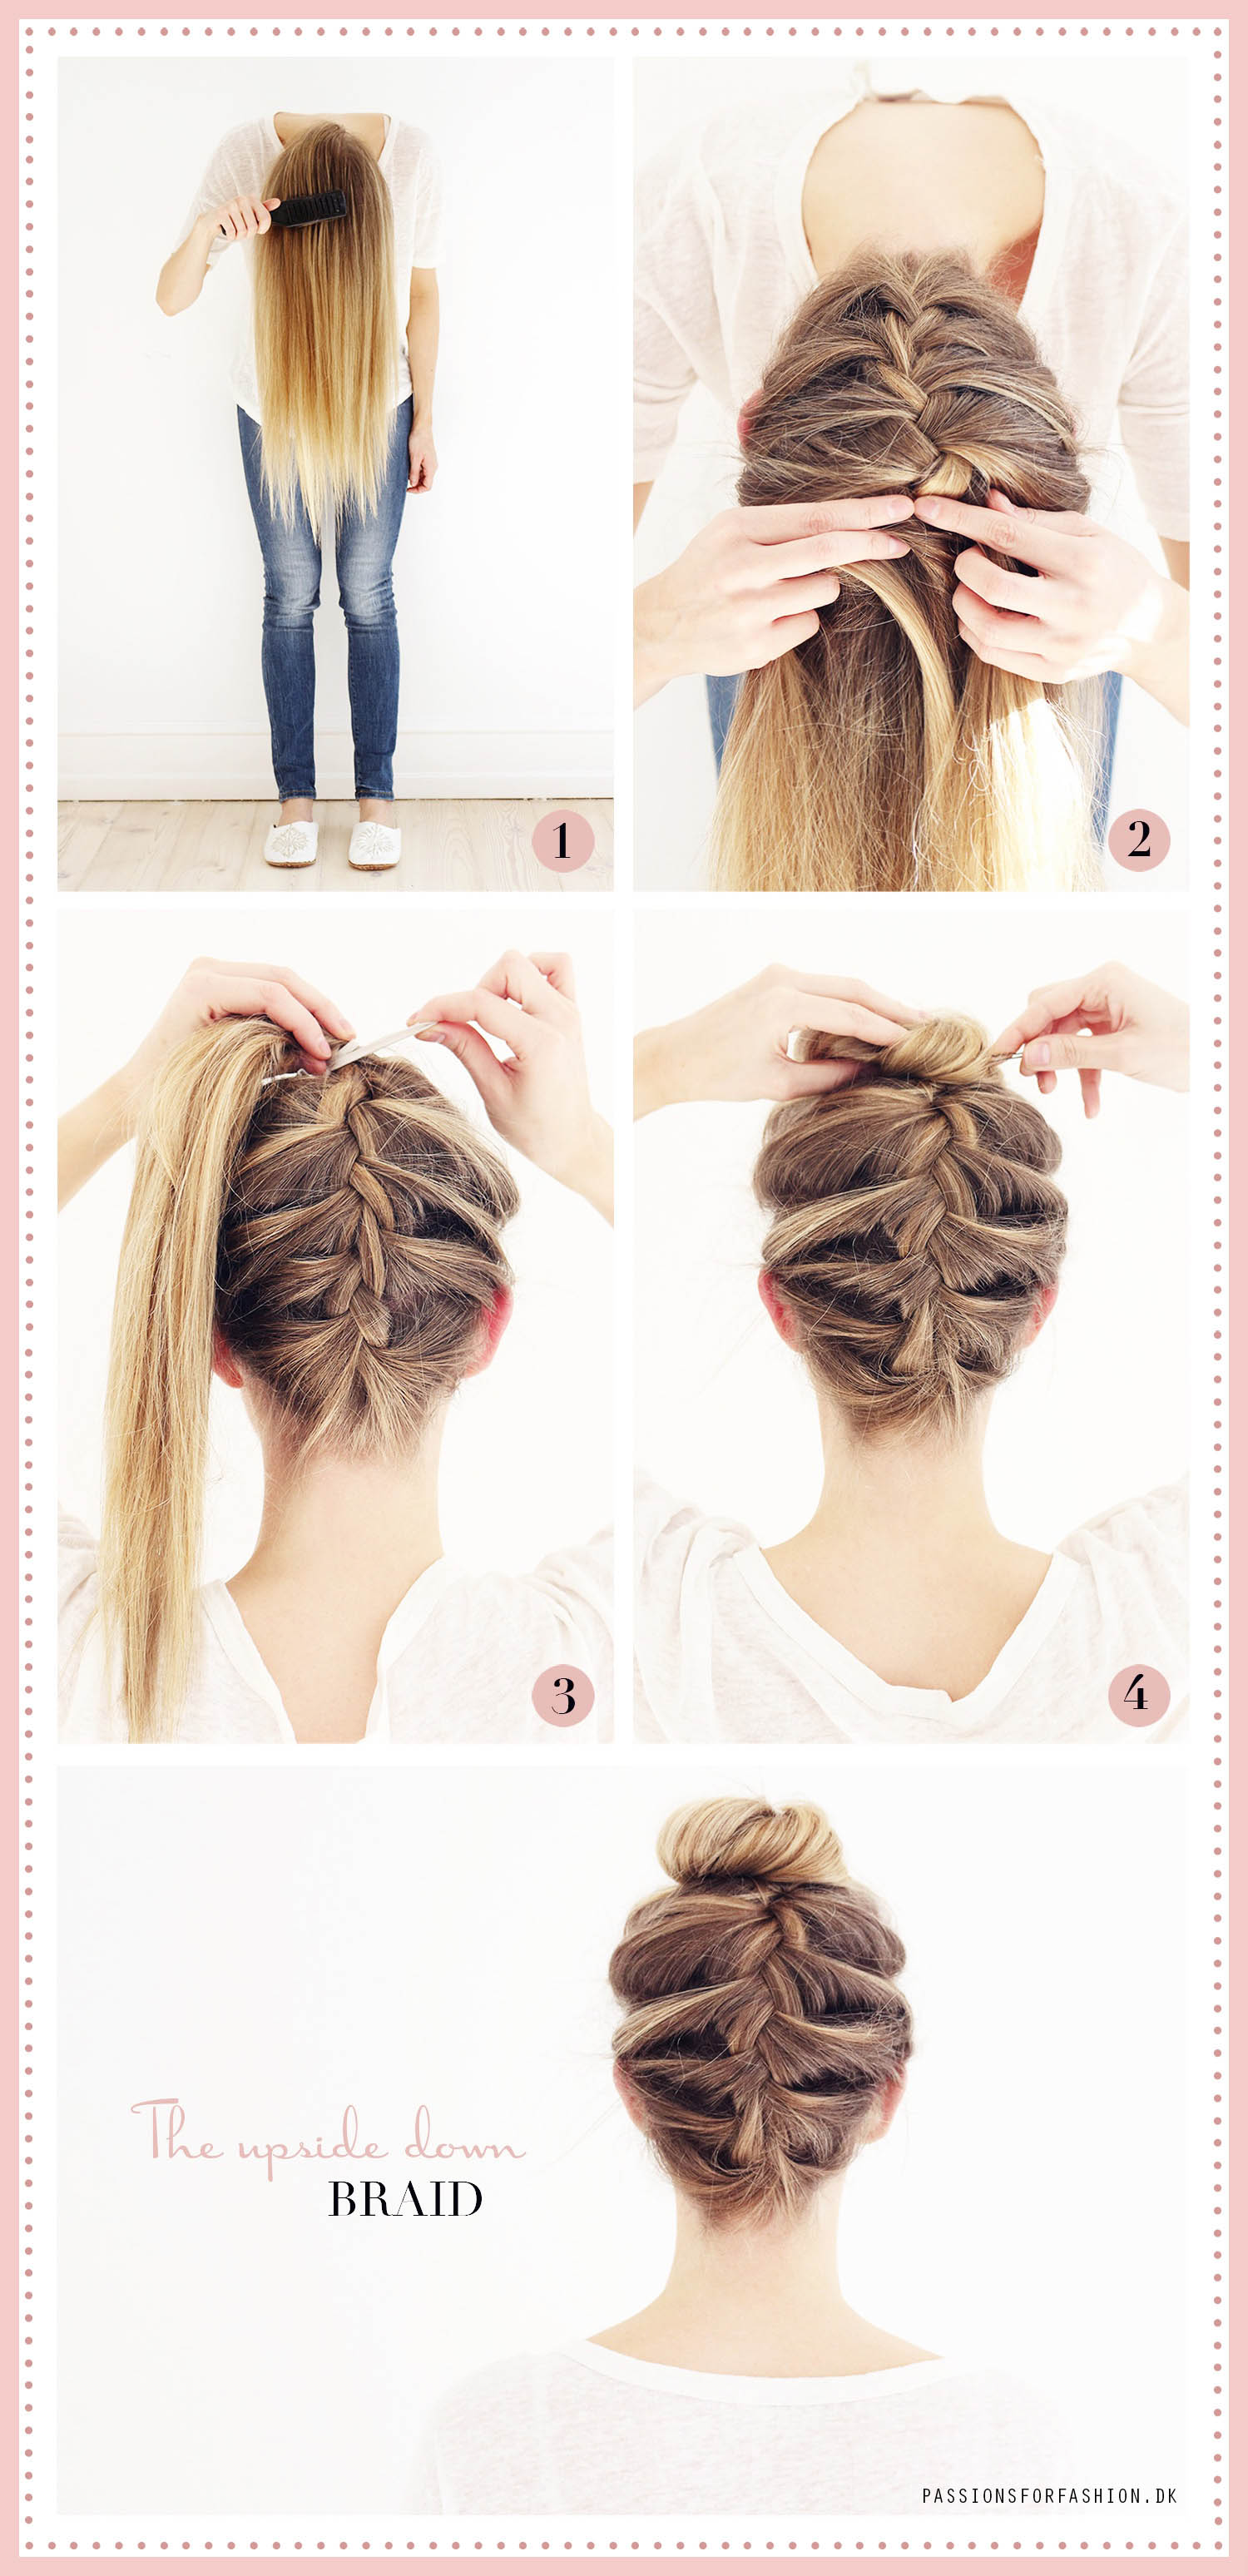 upside-down-braid@2x